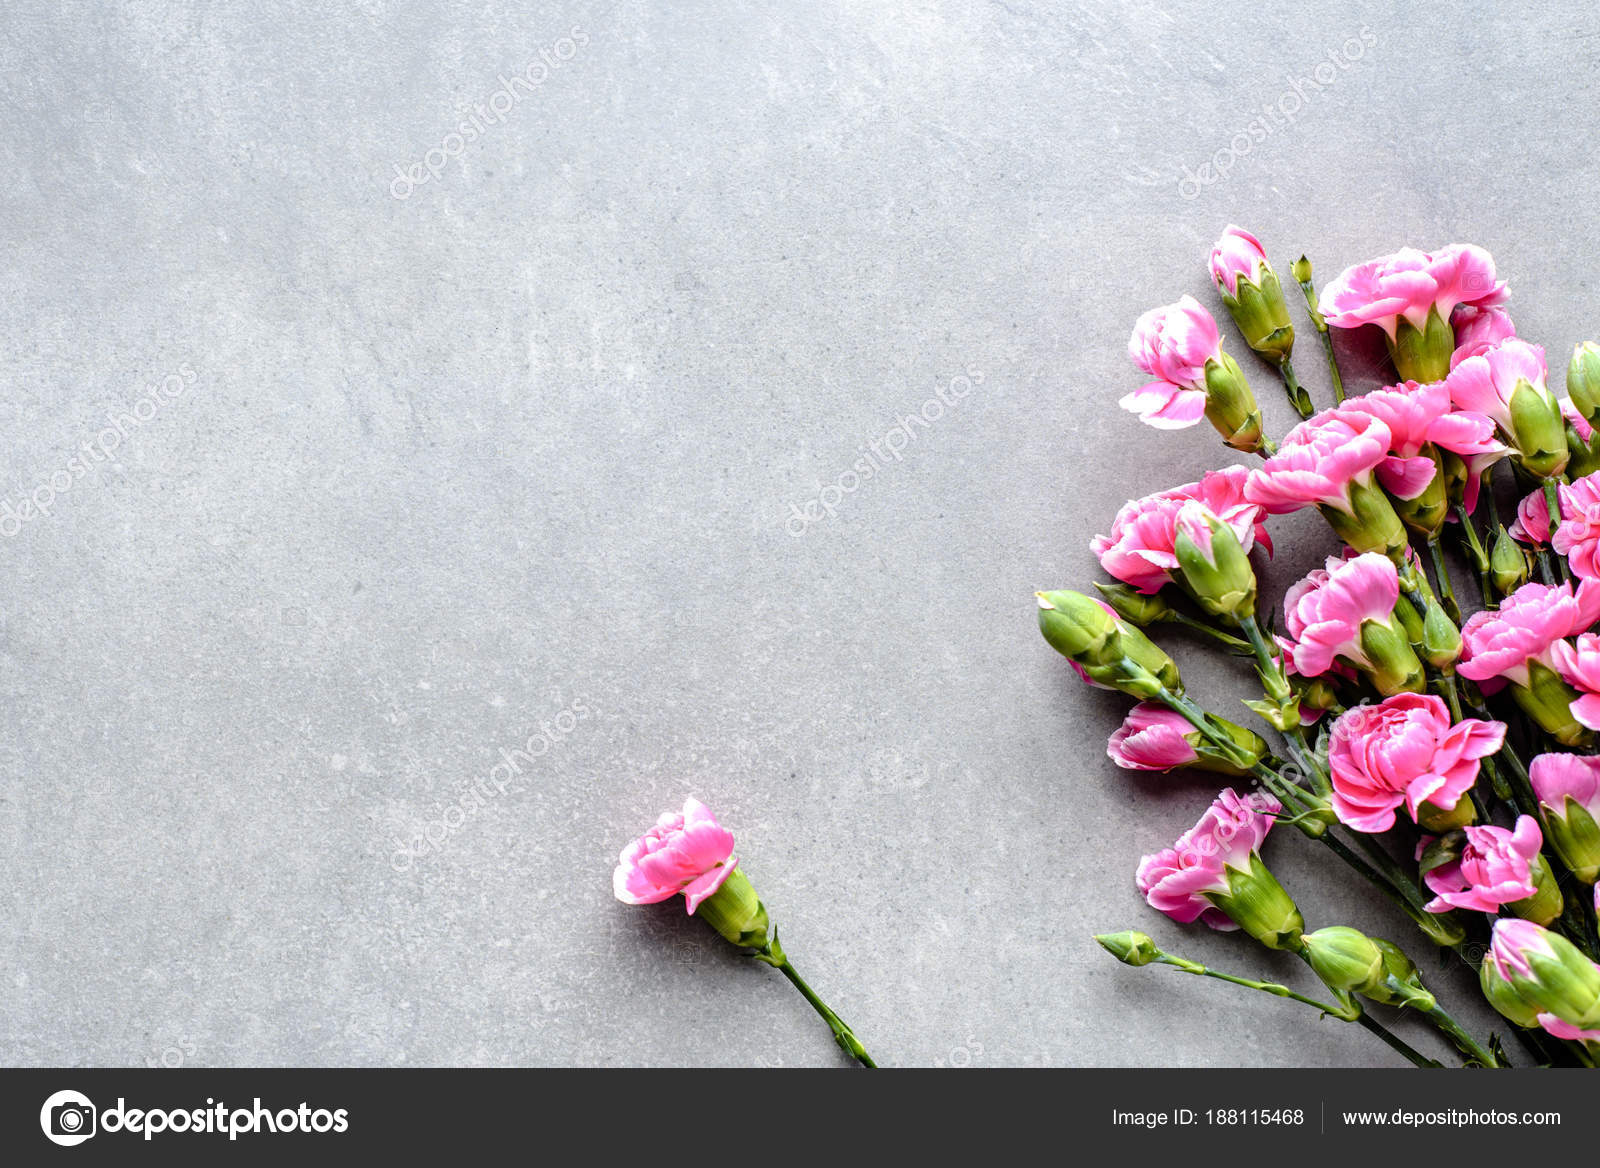 Pink cloves fresh spring flowers bouquet on grey background flat pink cloves fresh spring flowers bouquet on grey background flat lay top mightylinksfo